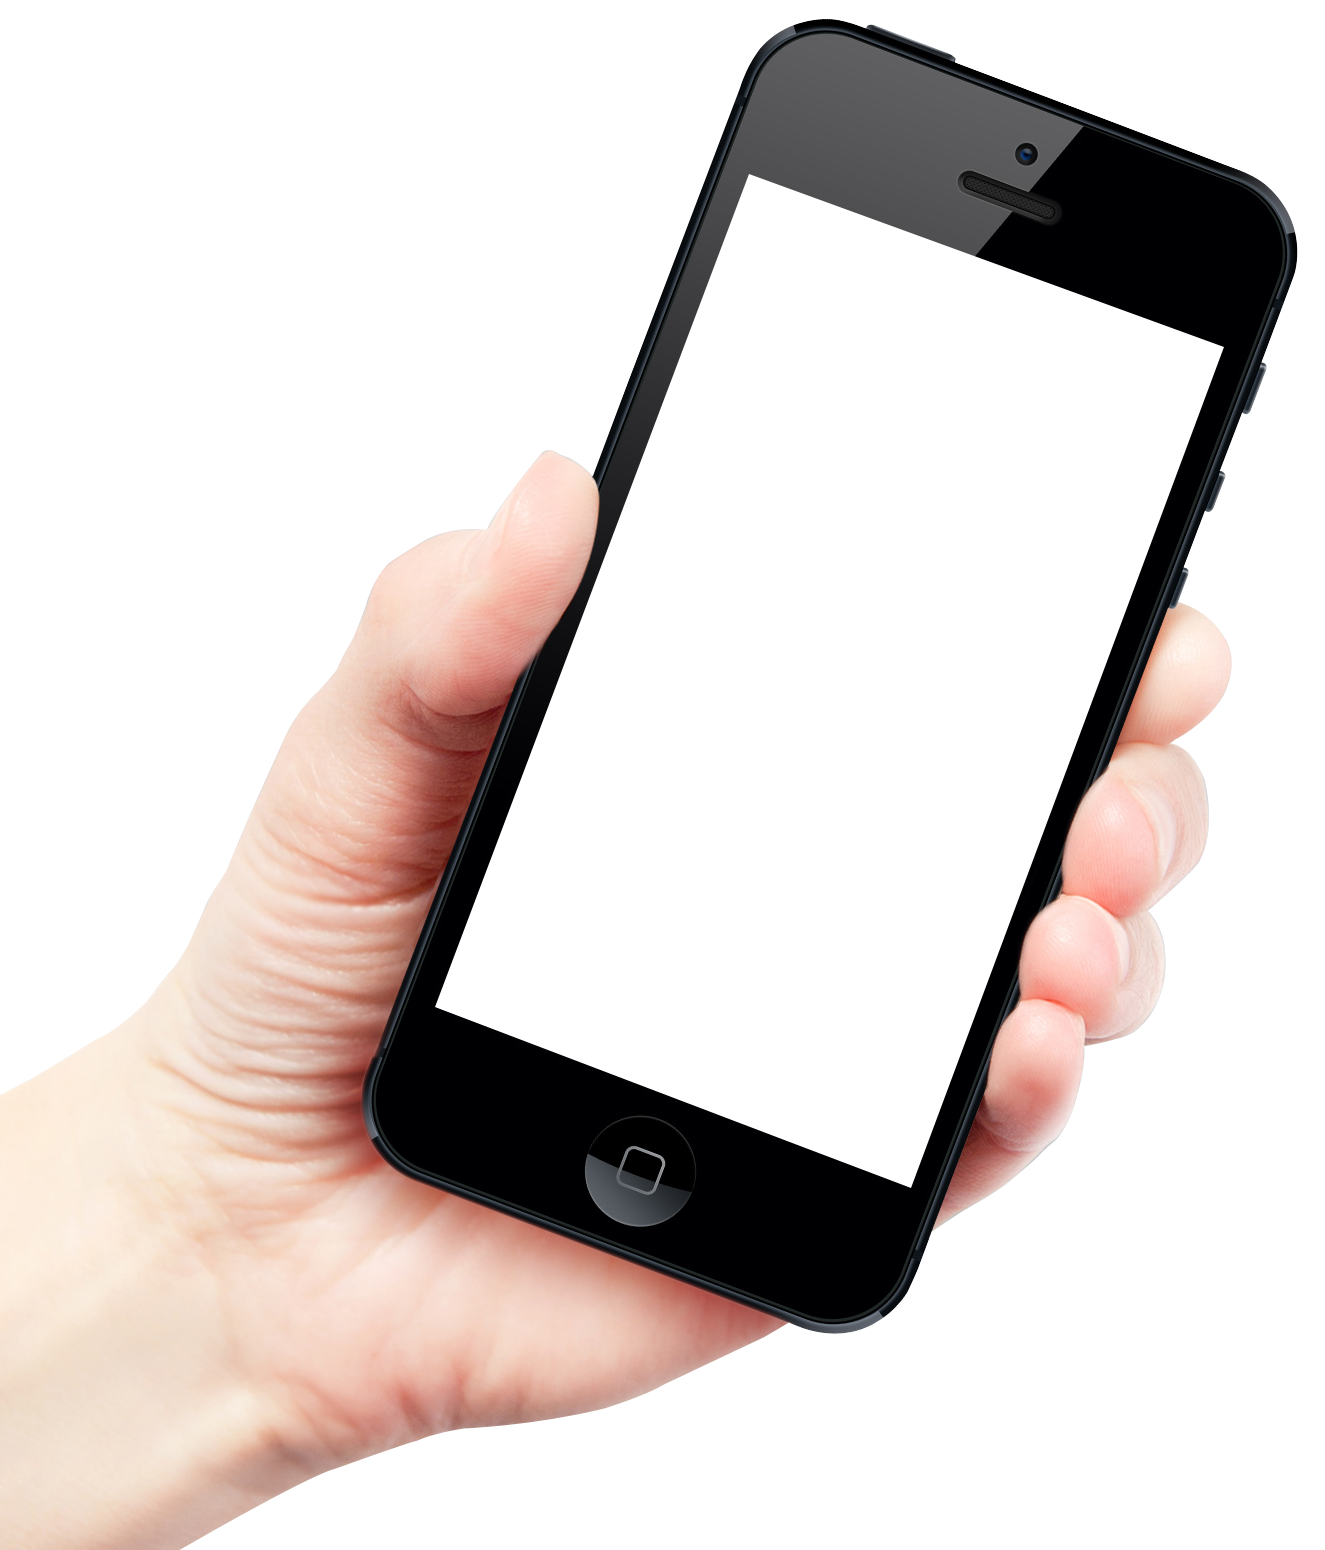 jpg black and white Smartphone PNG Images Transparent Free Download